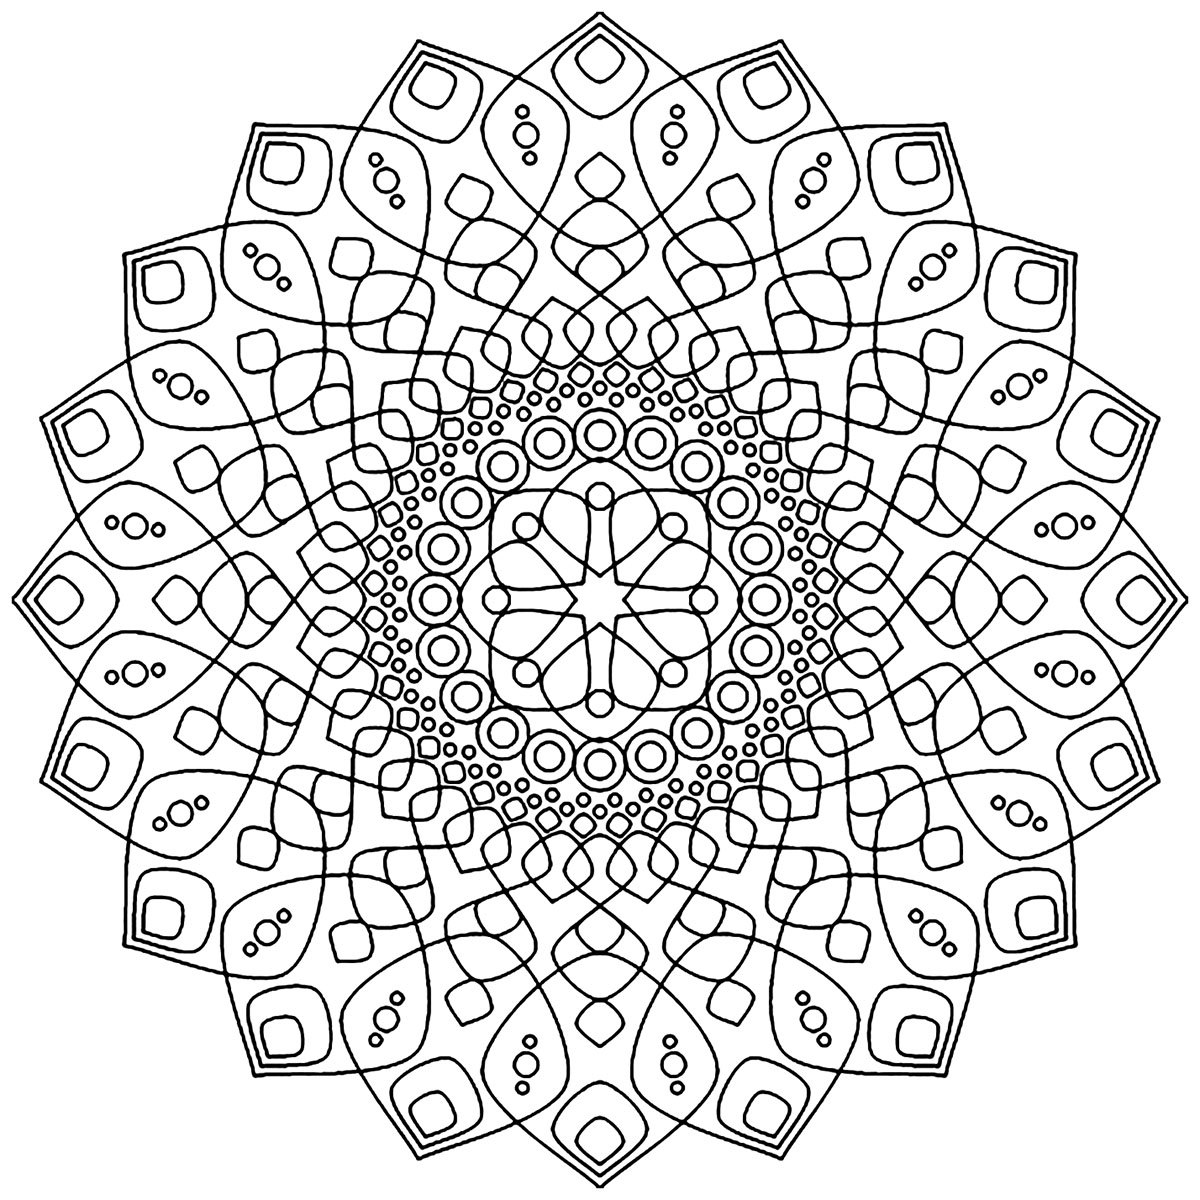 This Mandala coloring page is perfectly and totally soothing and calming ... Its patterns are simple and elegant.